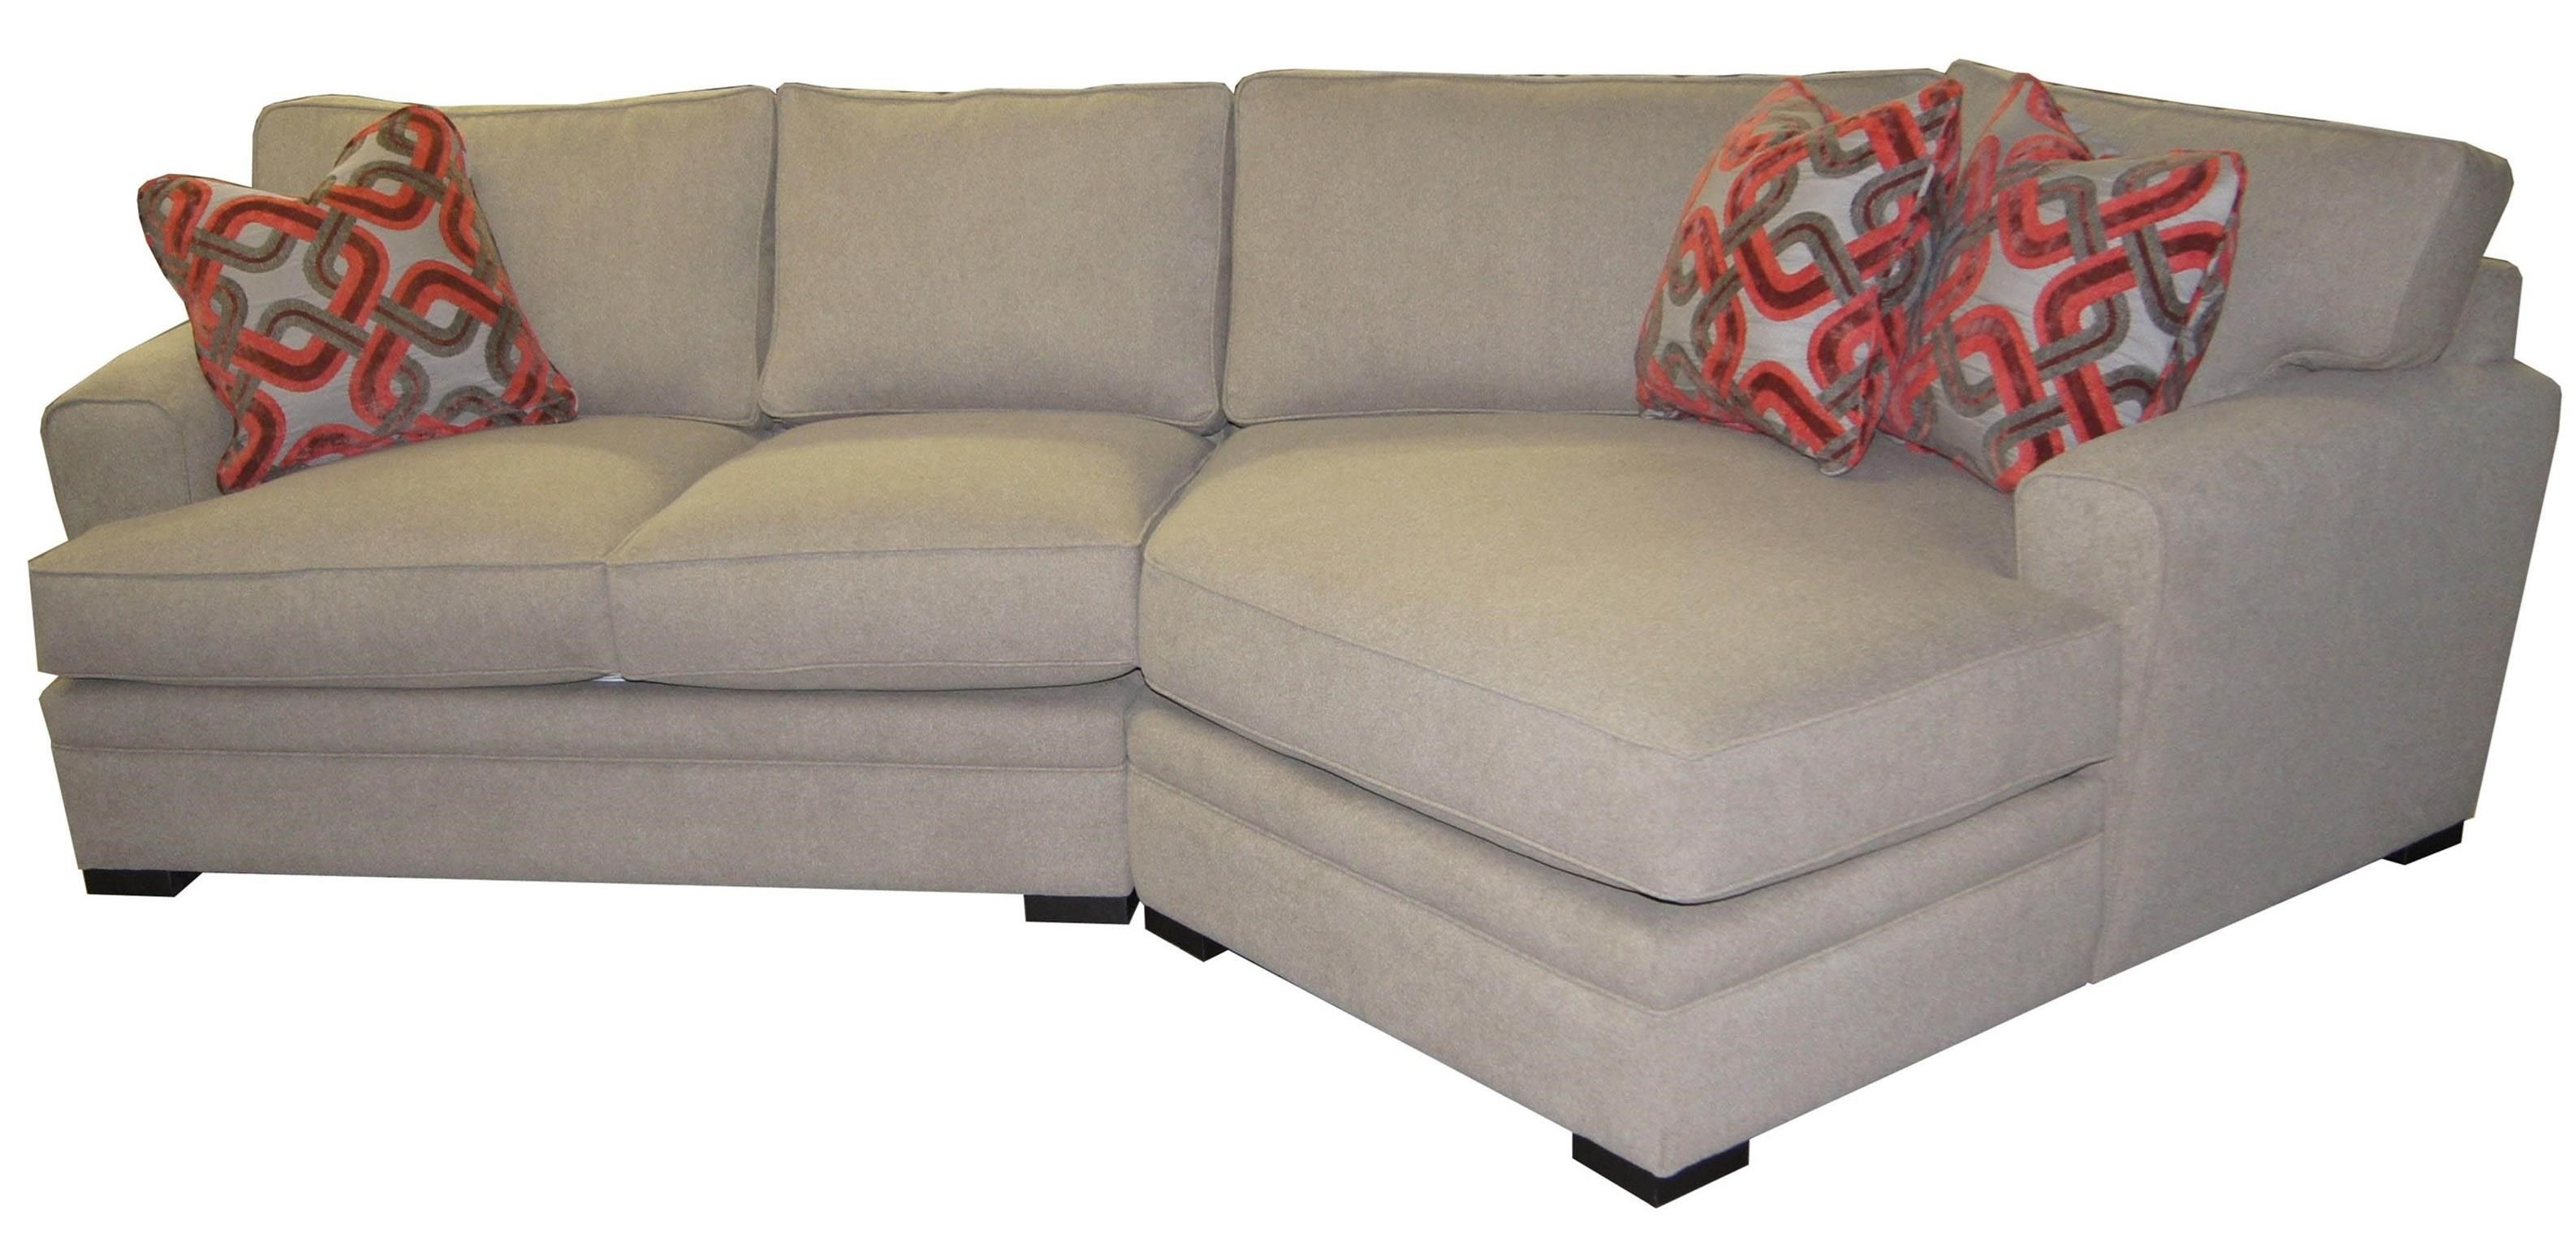 Jonathan Louis Aries Casual Sectional Sofa with Rolled Arms John